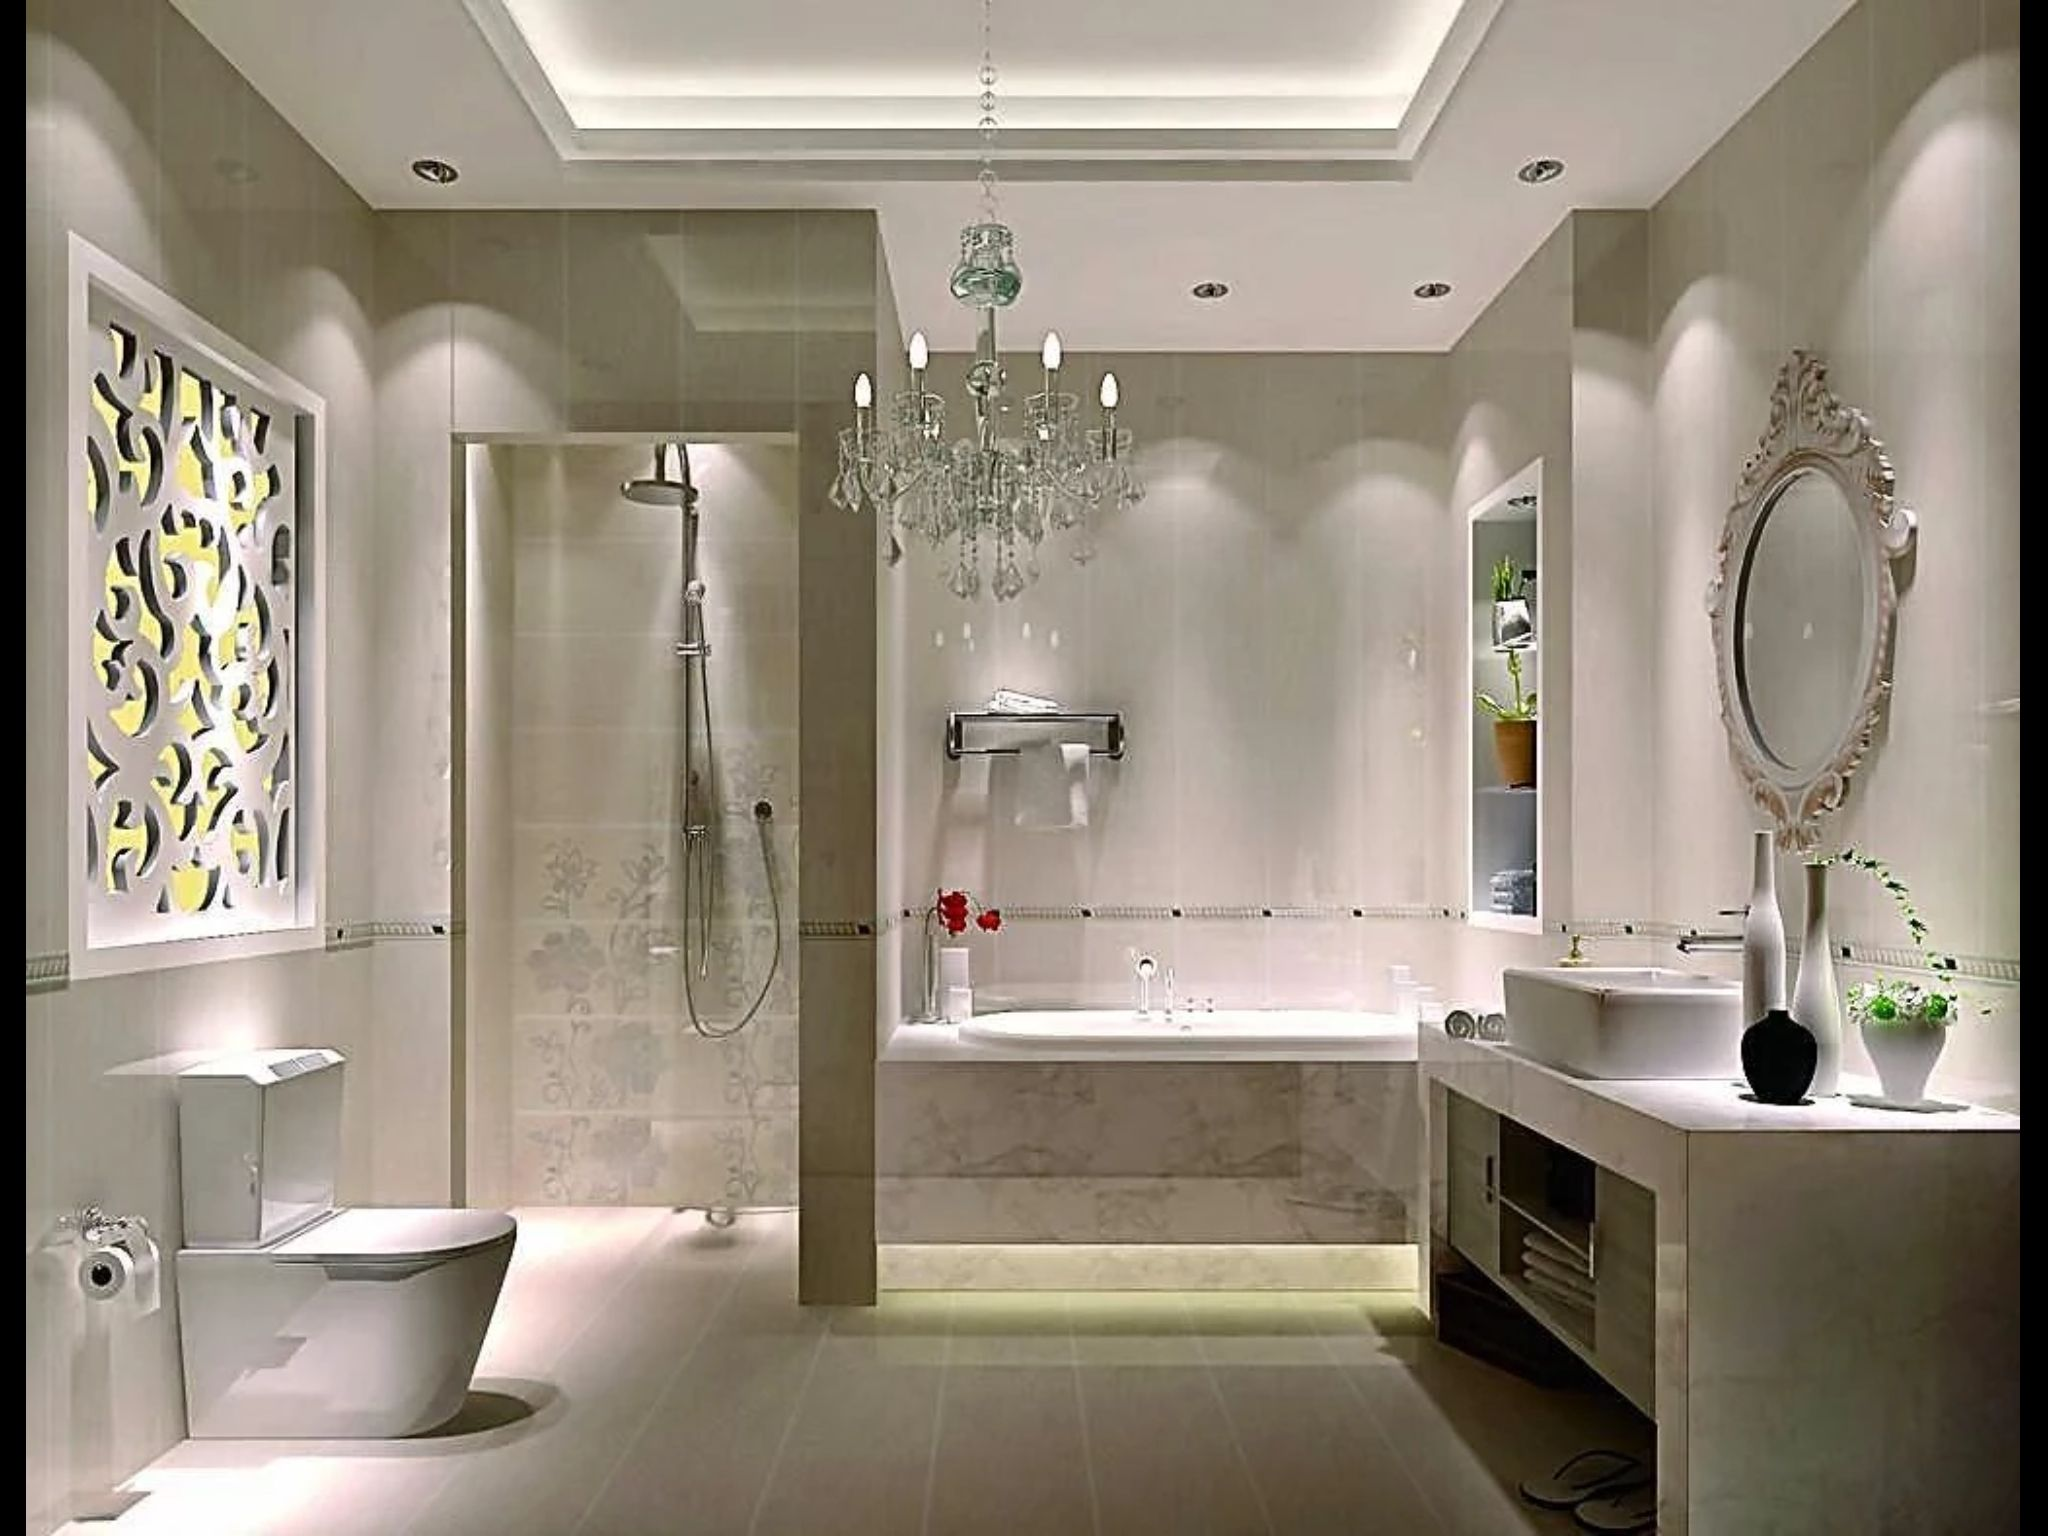 Elegant Bathrooms Designs Elegant Bathroom Design  Bathroom Designs  Pinterest  Bathroom